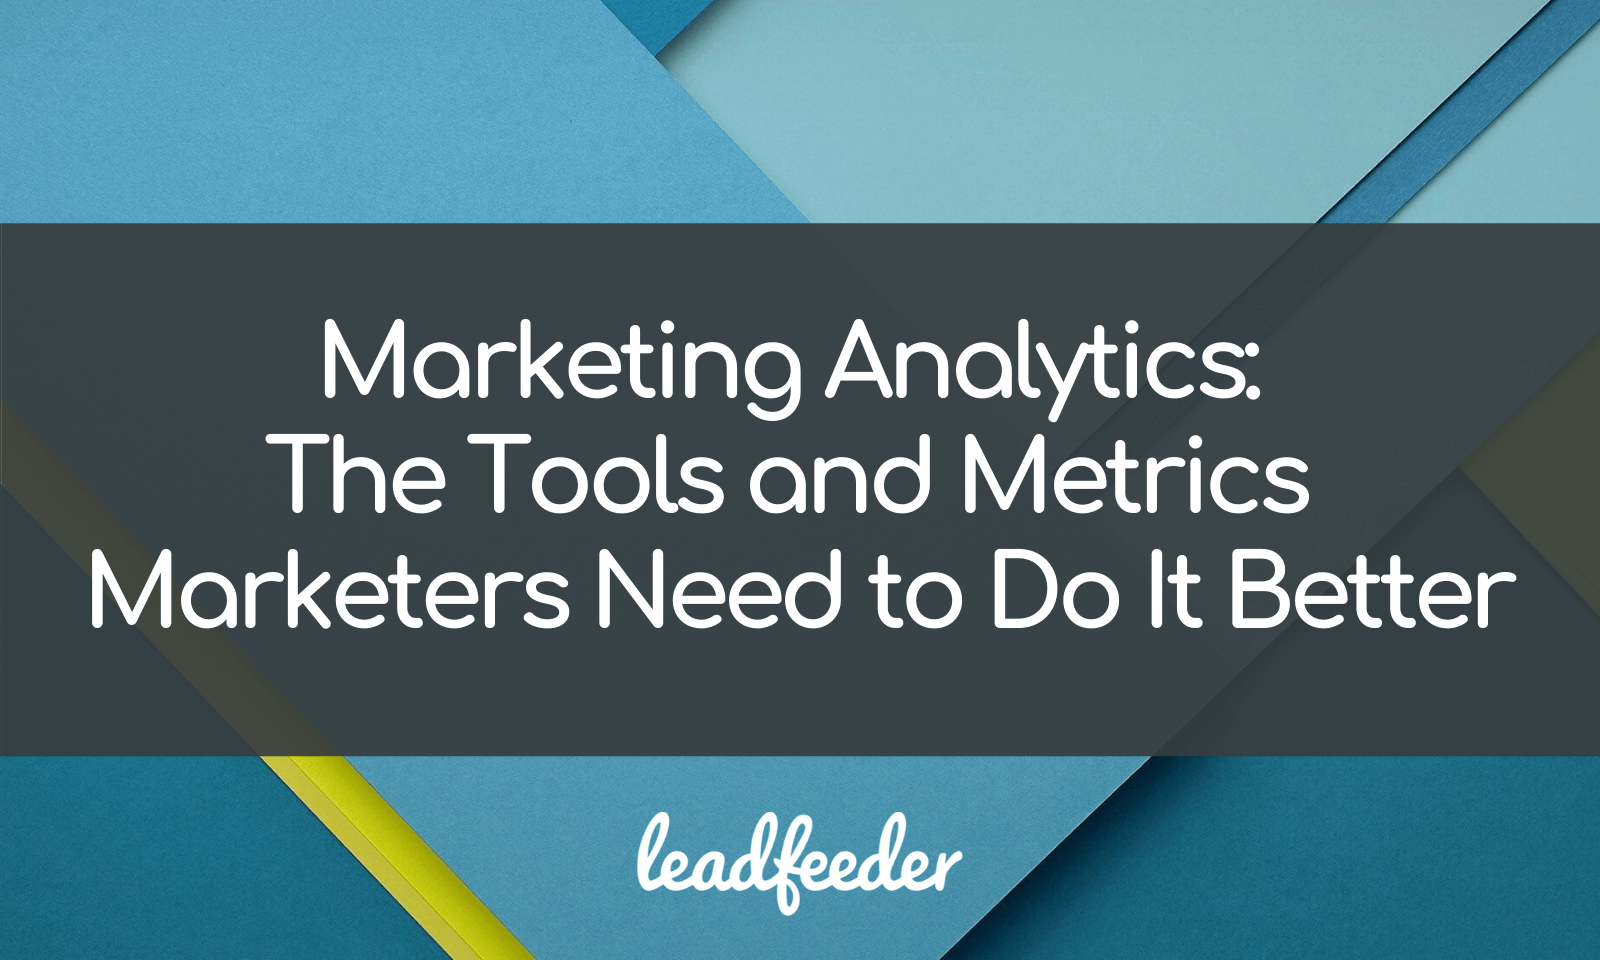 Marketing Analytics: The Tools and Metrics Marketers Need to Do It Better